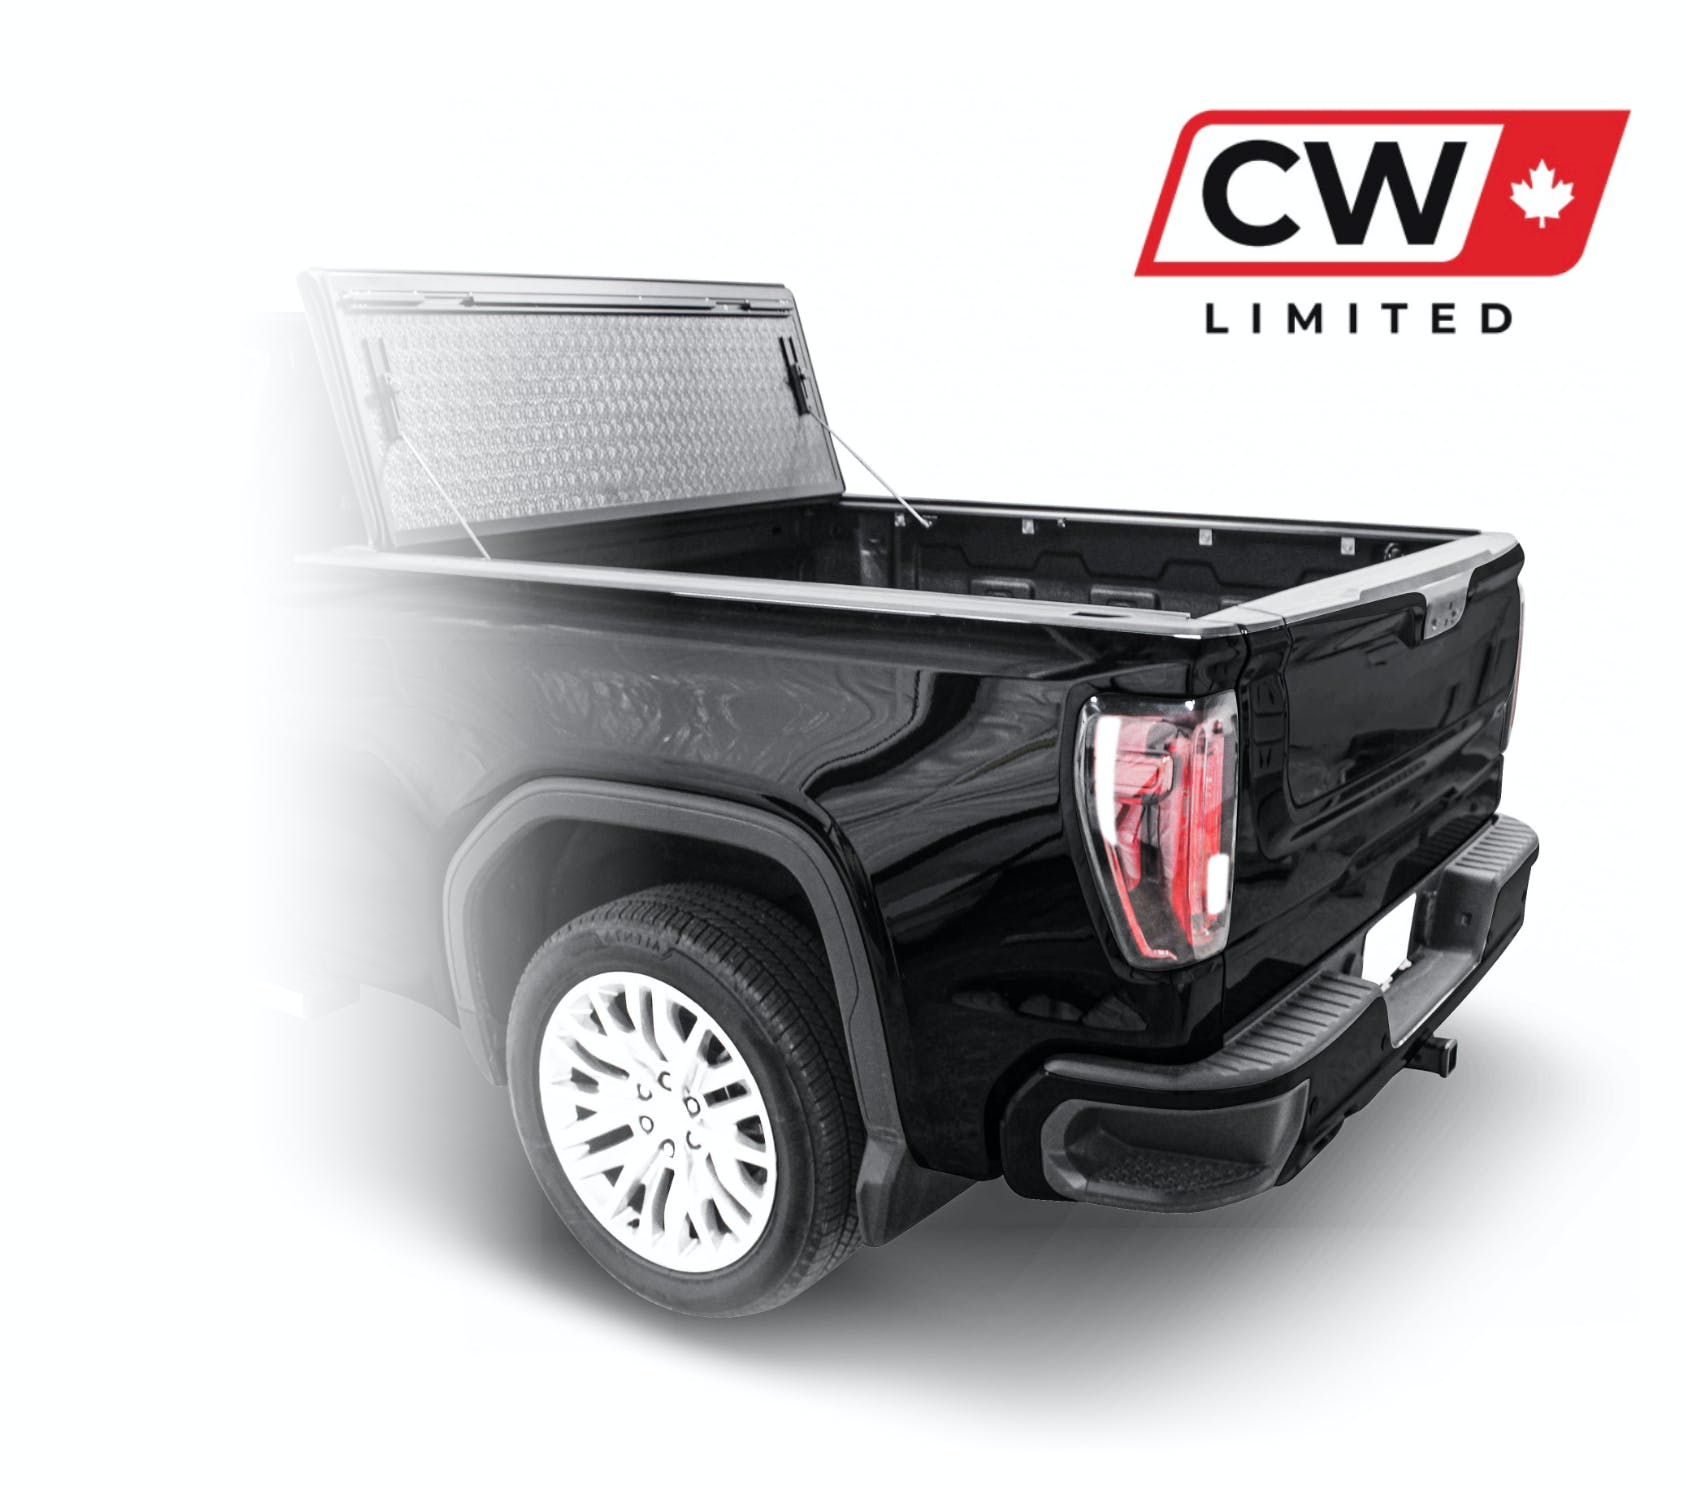 CW Limited project image showing the rear end of a pickup truck and the new CW logo